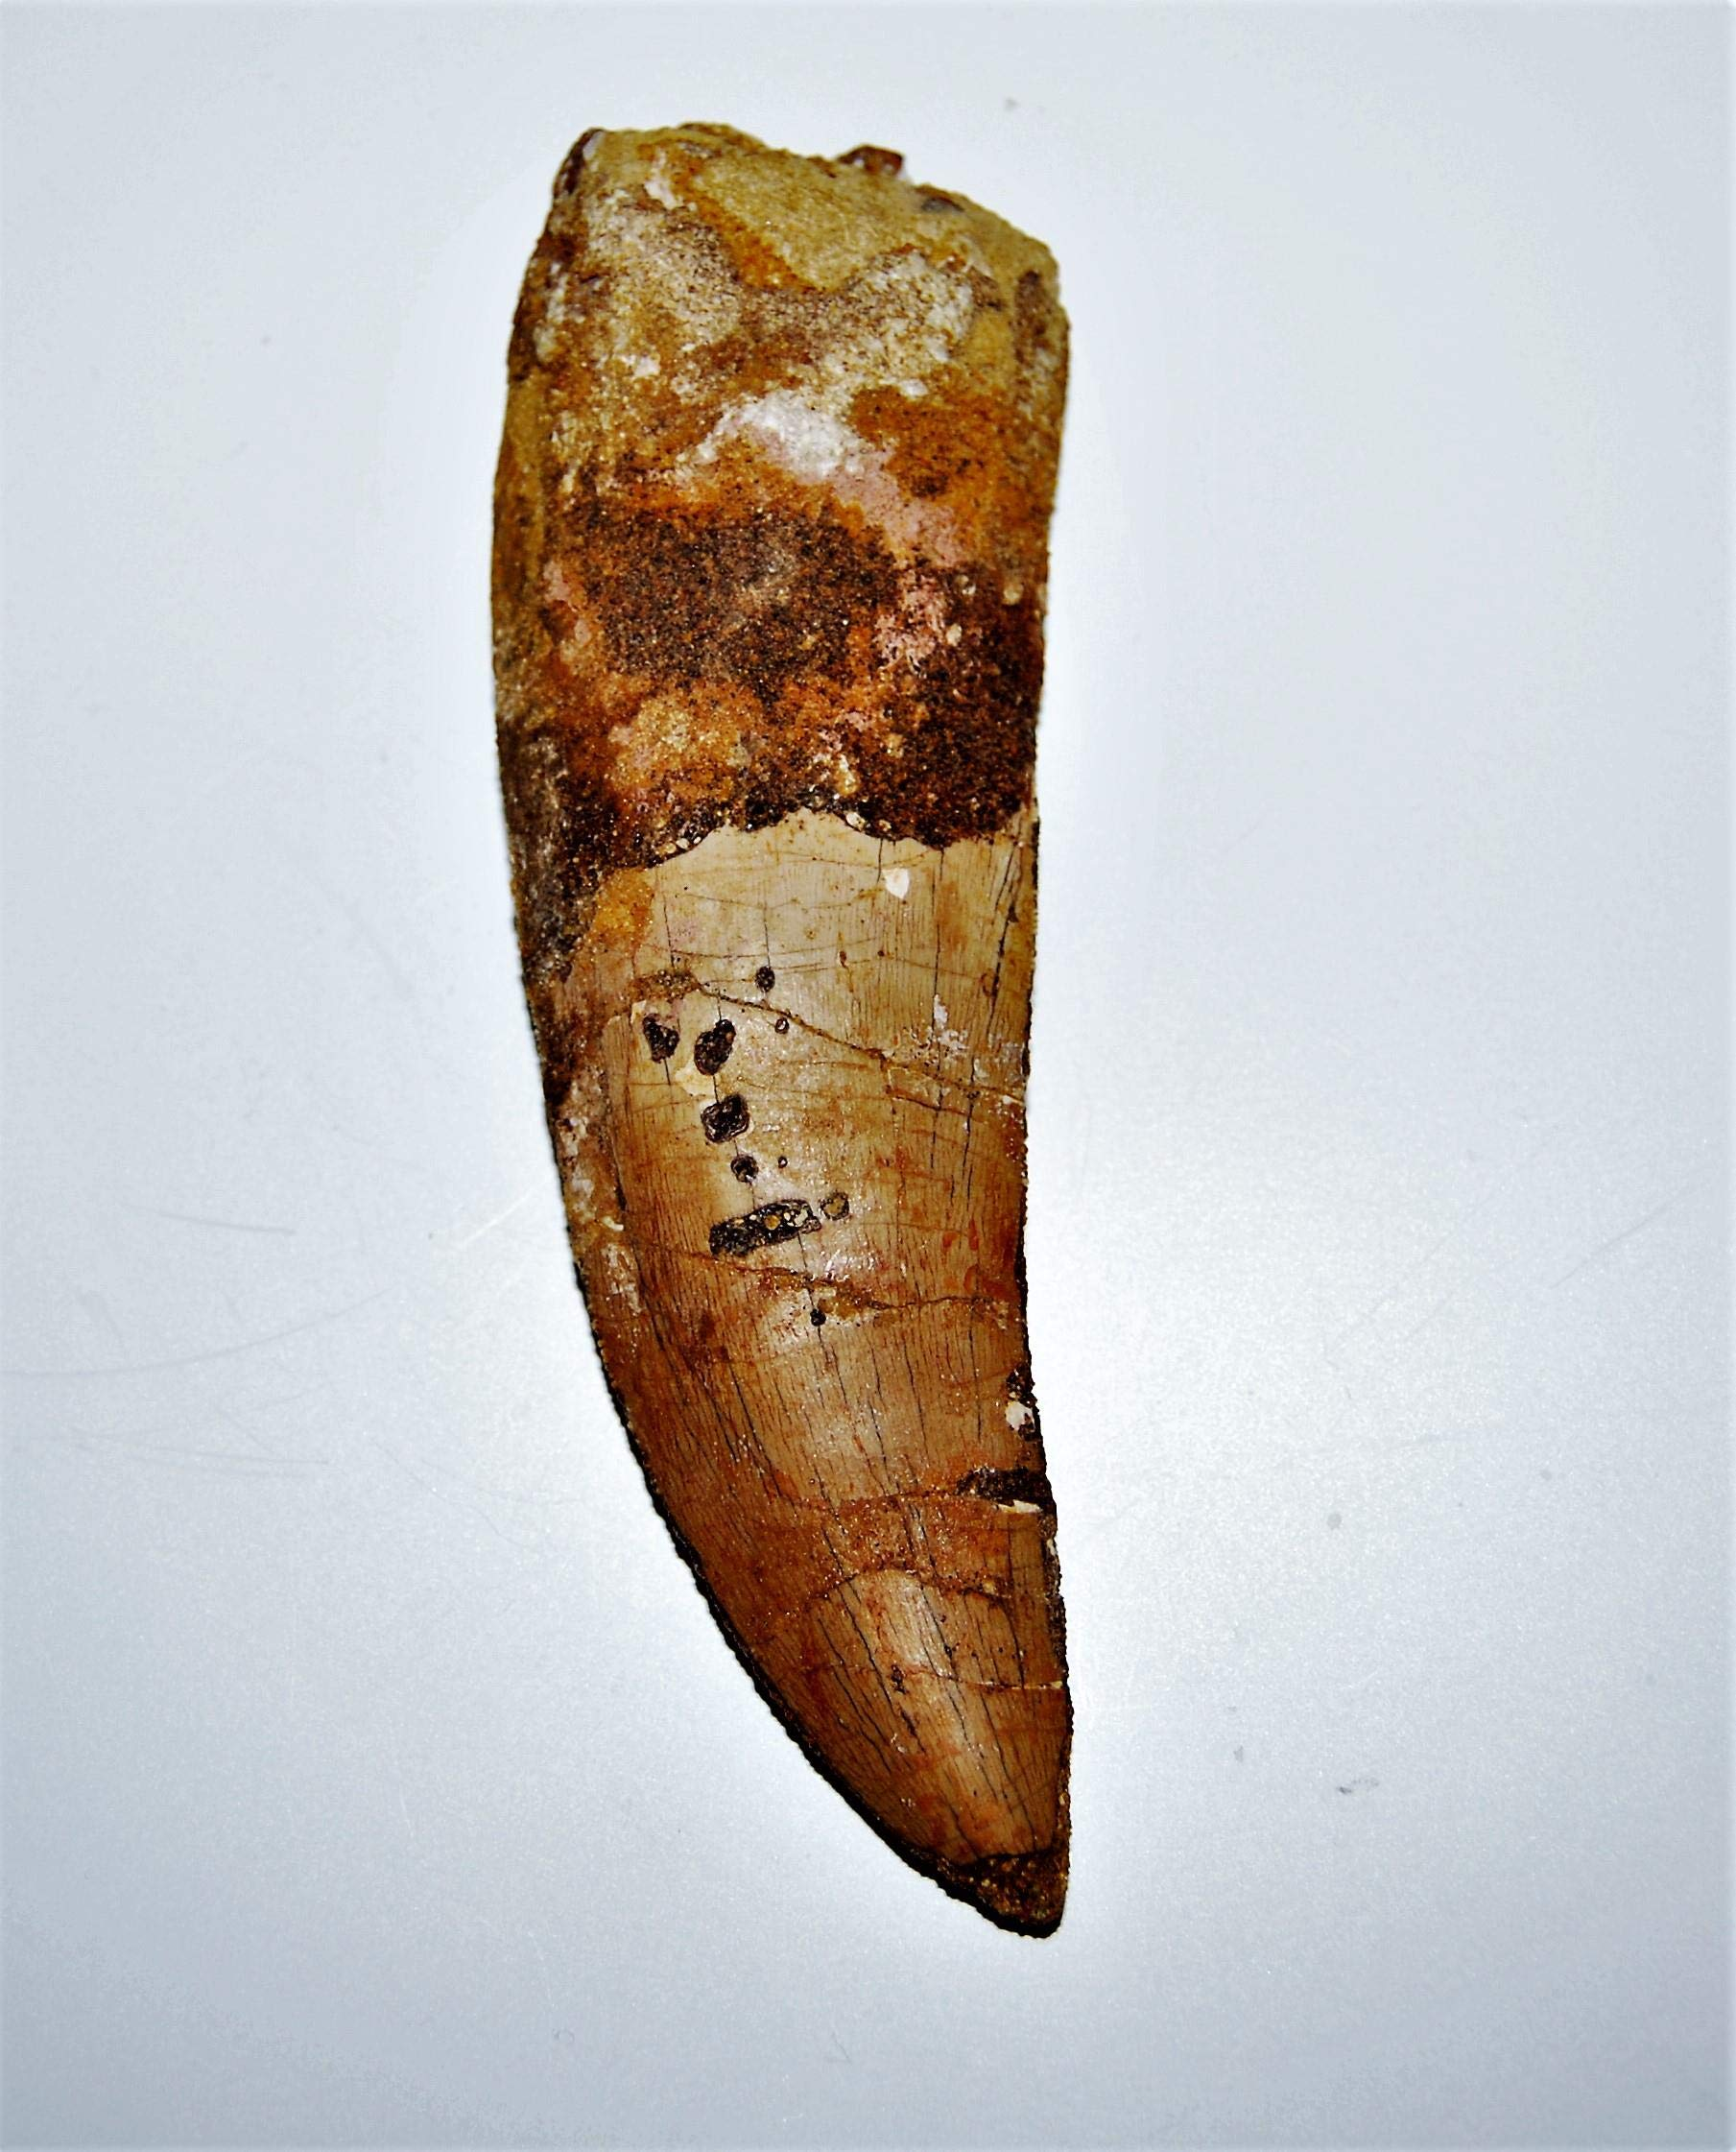 Carcharodontosaurus Dinosaur Tooth 5.012'' Fossil African T-Rex XLDB #14158 23o by Fossils, Meteorites, & More (Image #3)